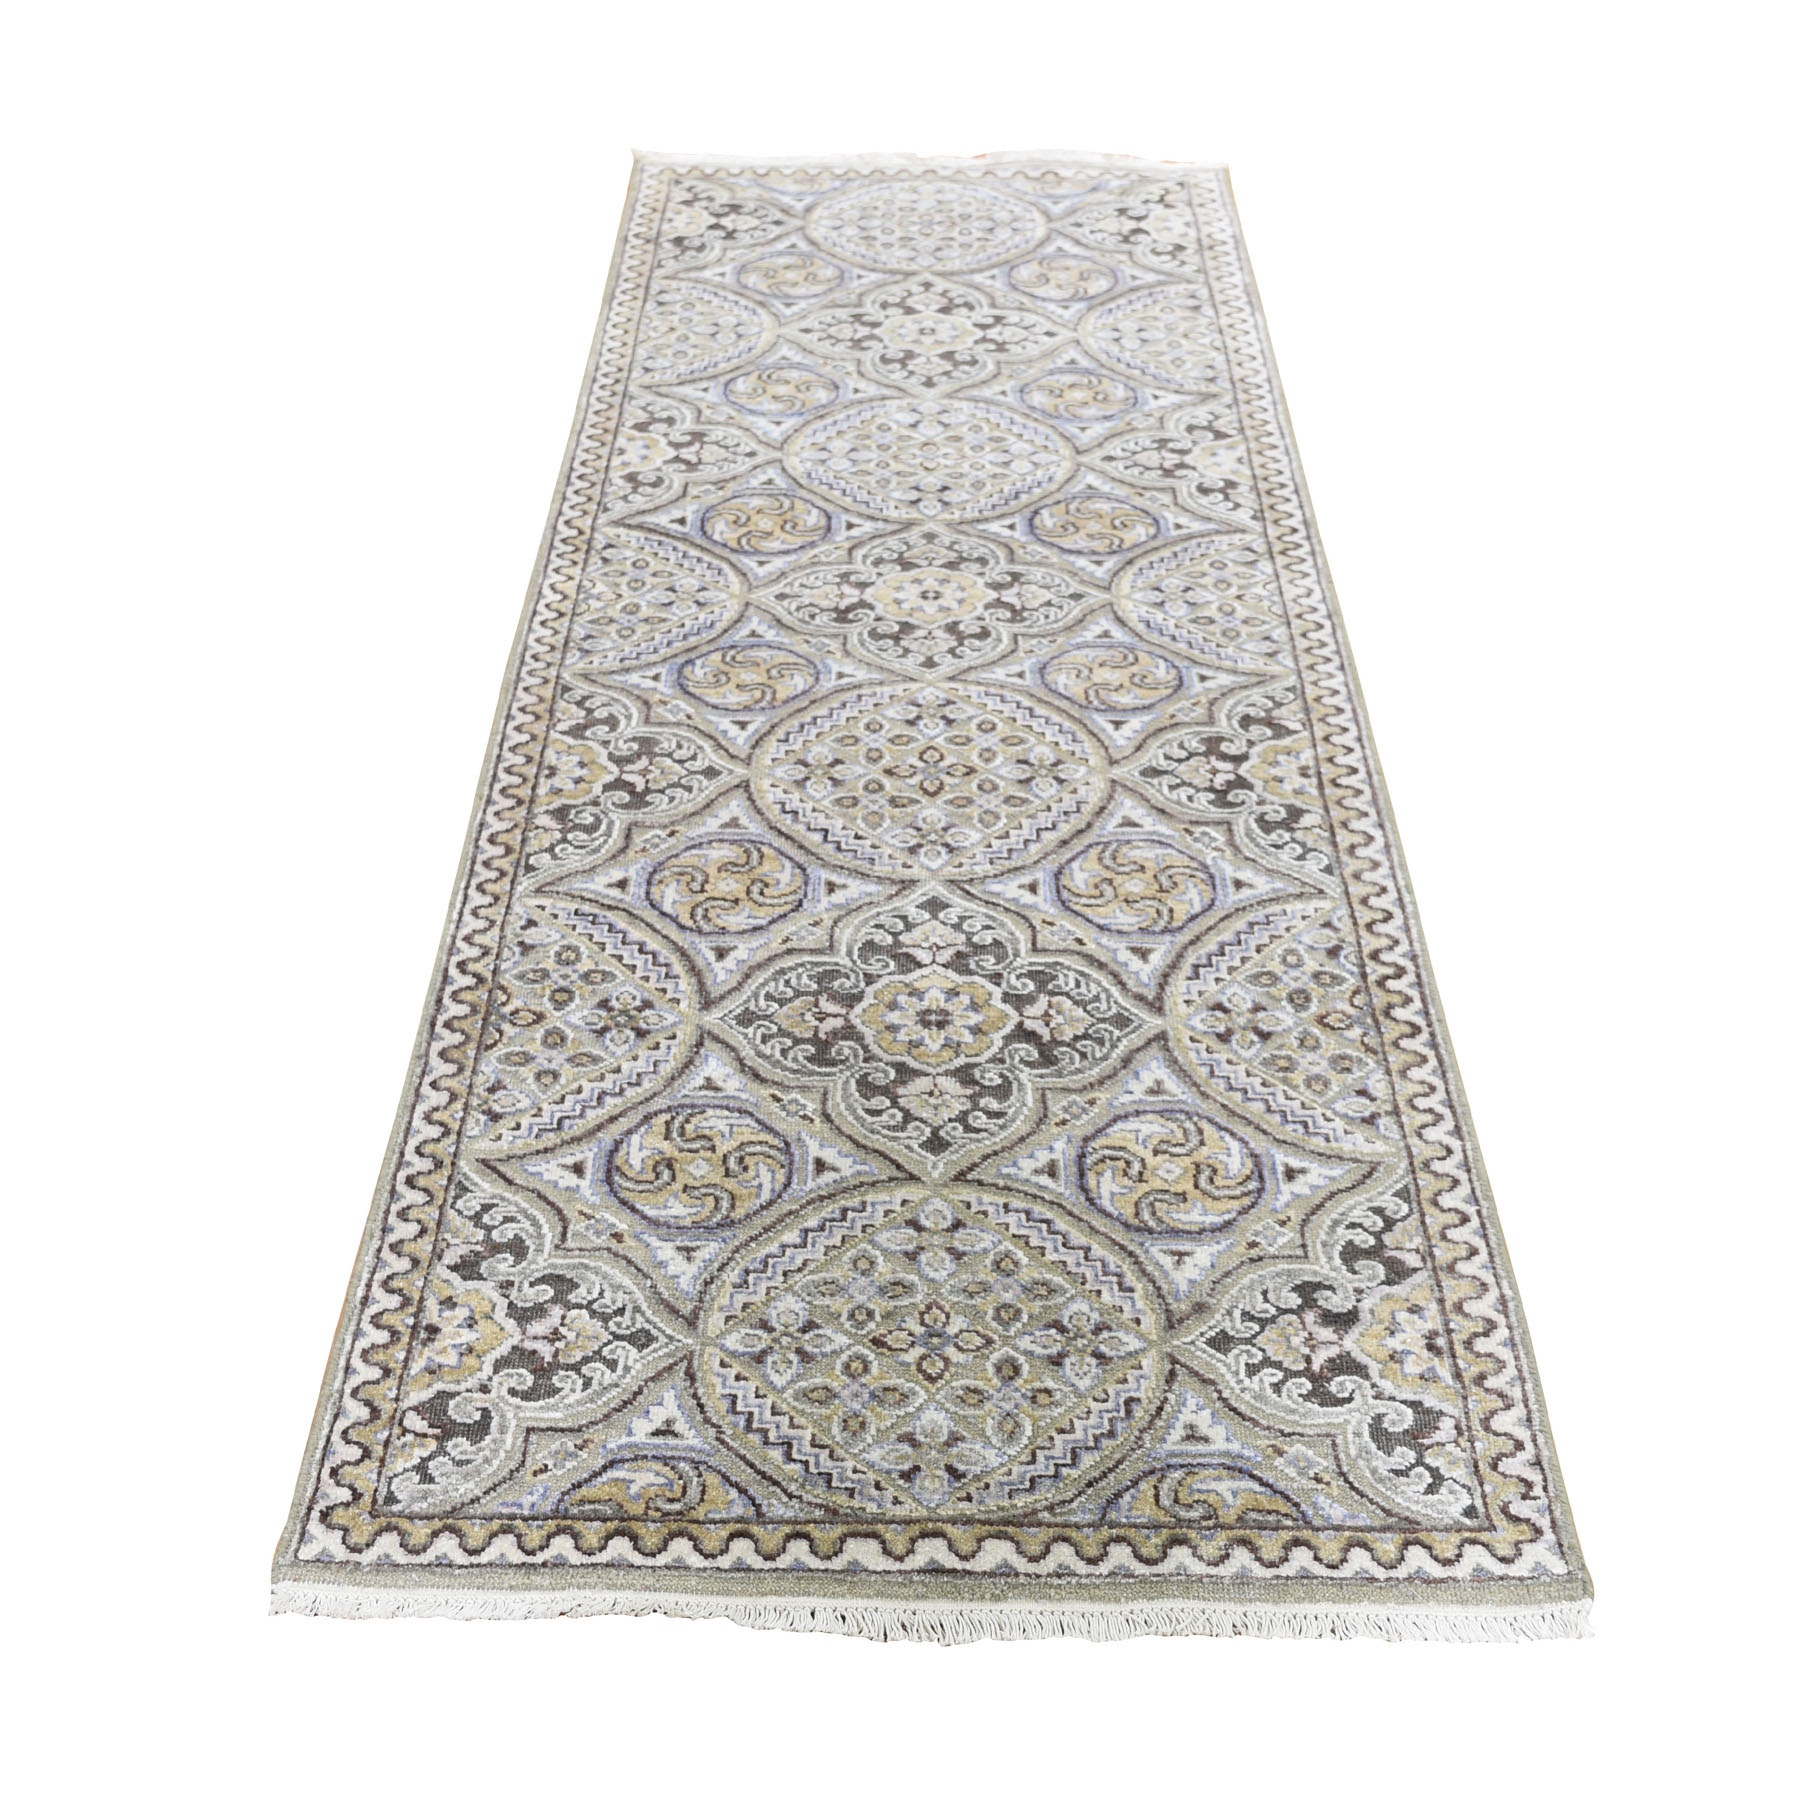 "2'6""X7'9"" Textured Wool And Silk Mughal Inspired Medallions Runner Oriental Rug moad69d8"